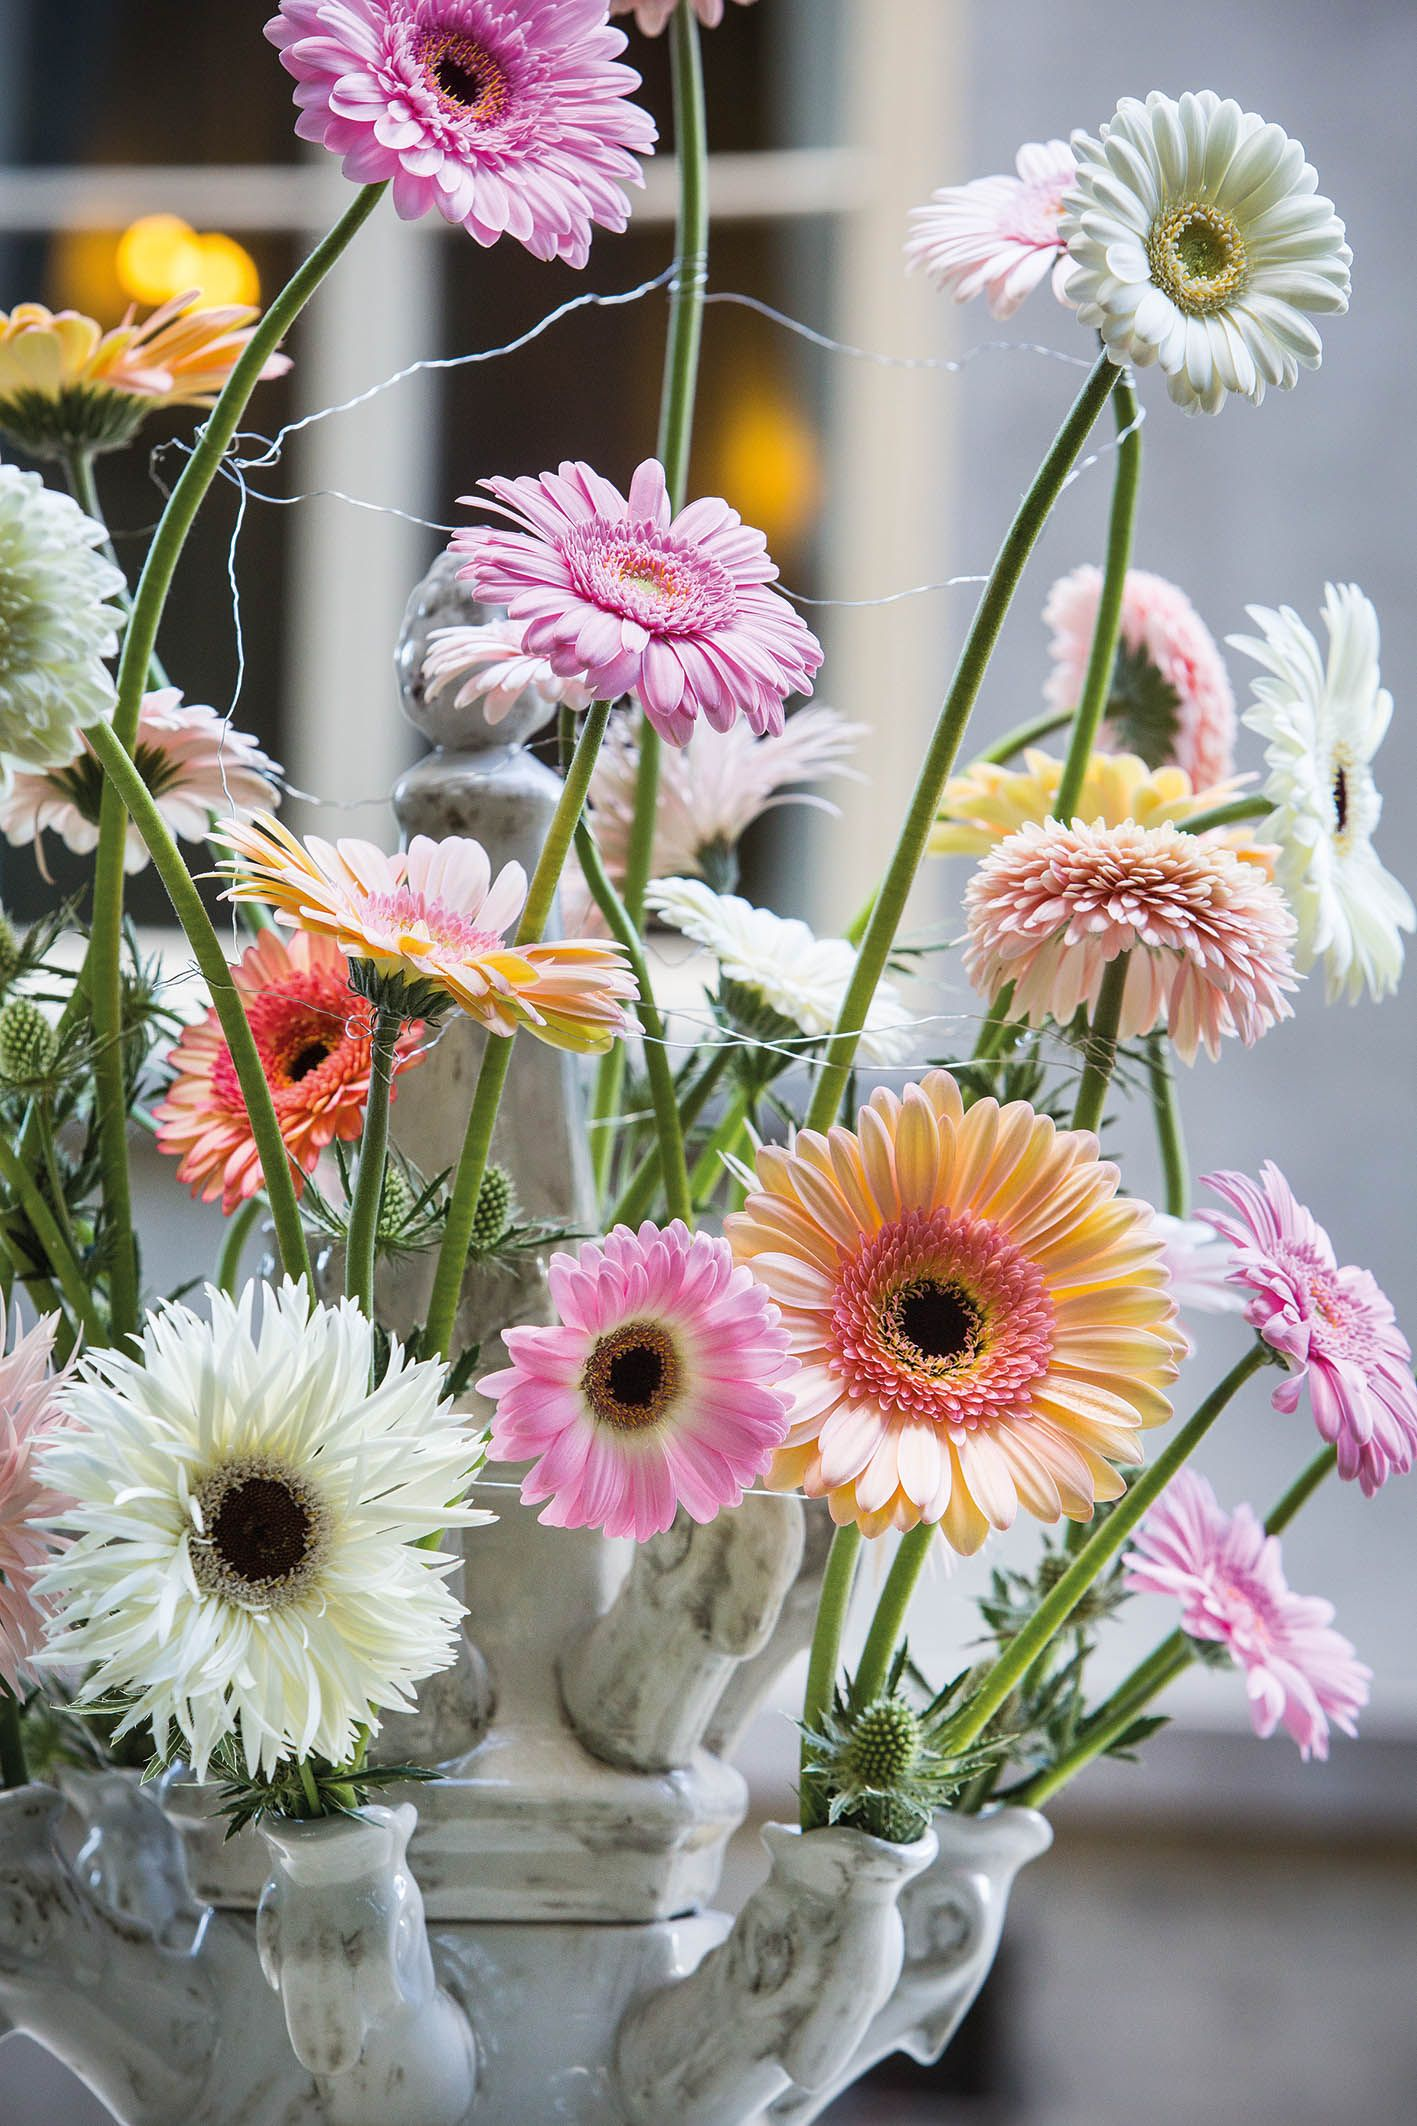 Pin by Veronica Williams on Crazy for Daisy\'s | Pinterest | Gerbera ...